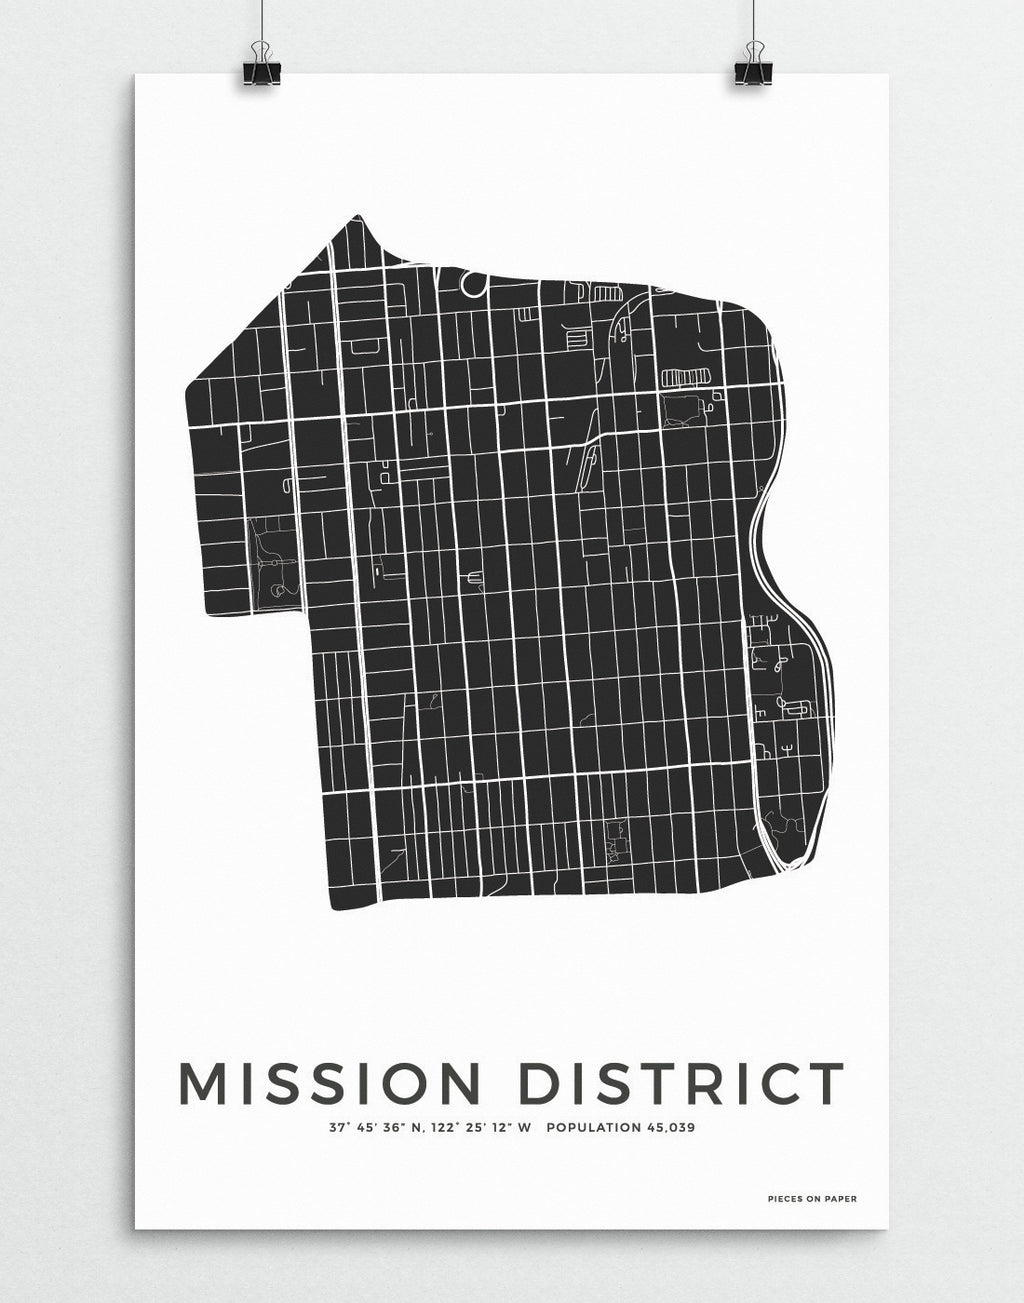 Mission District